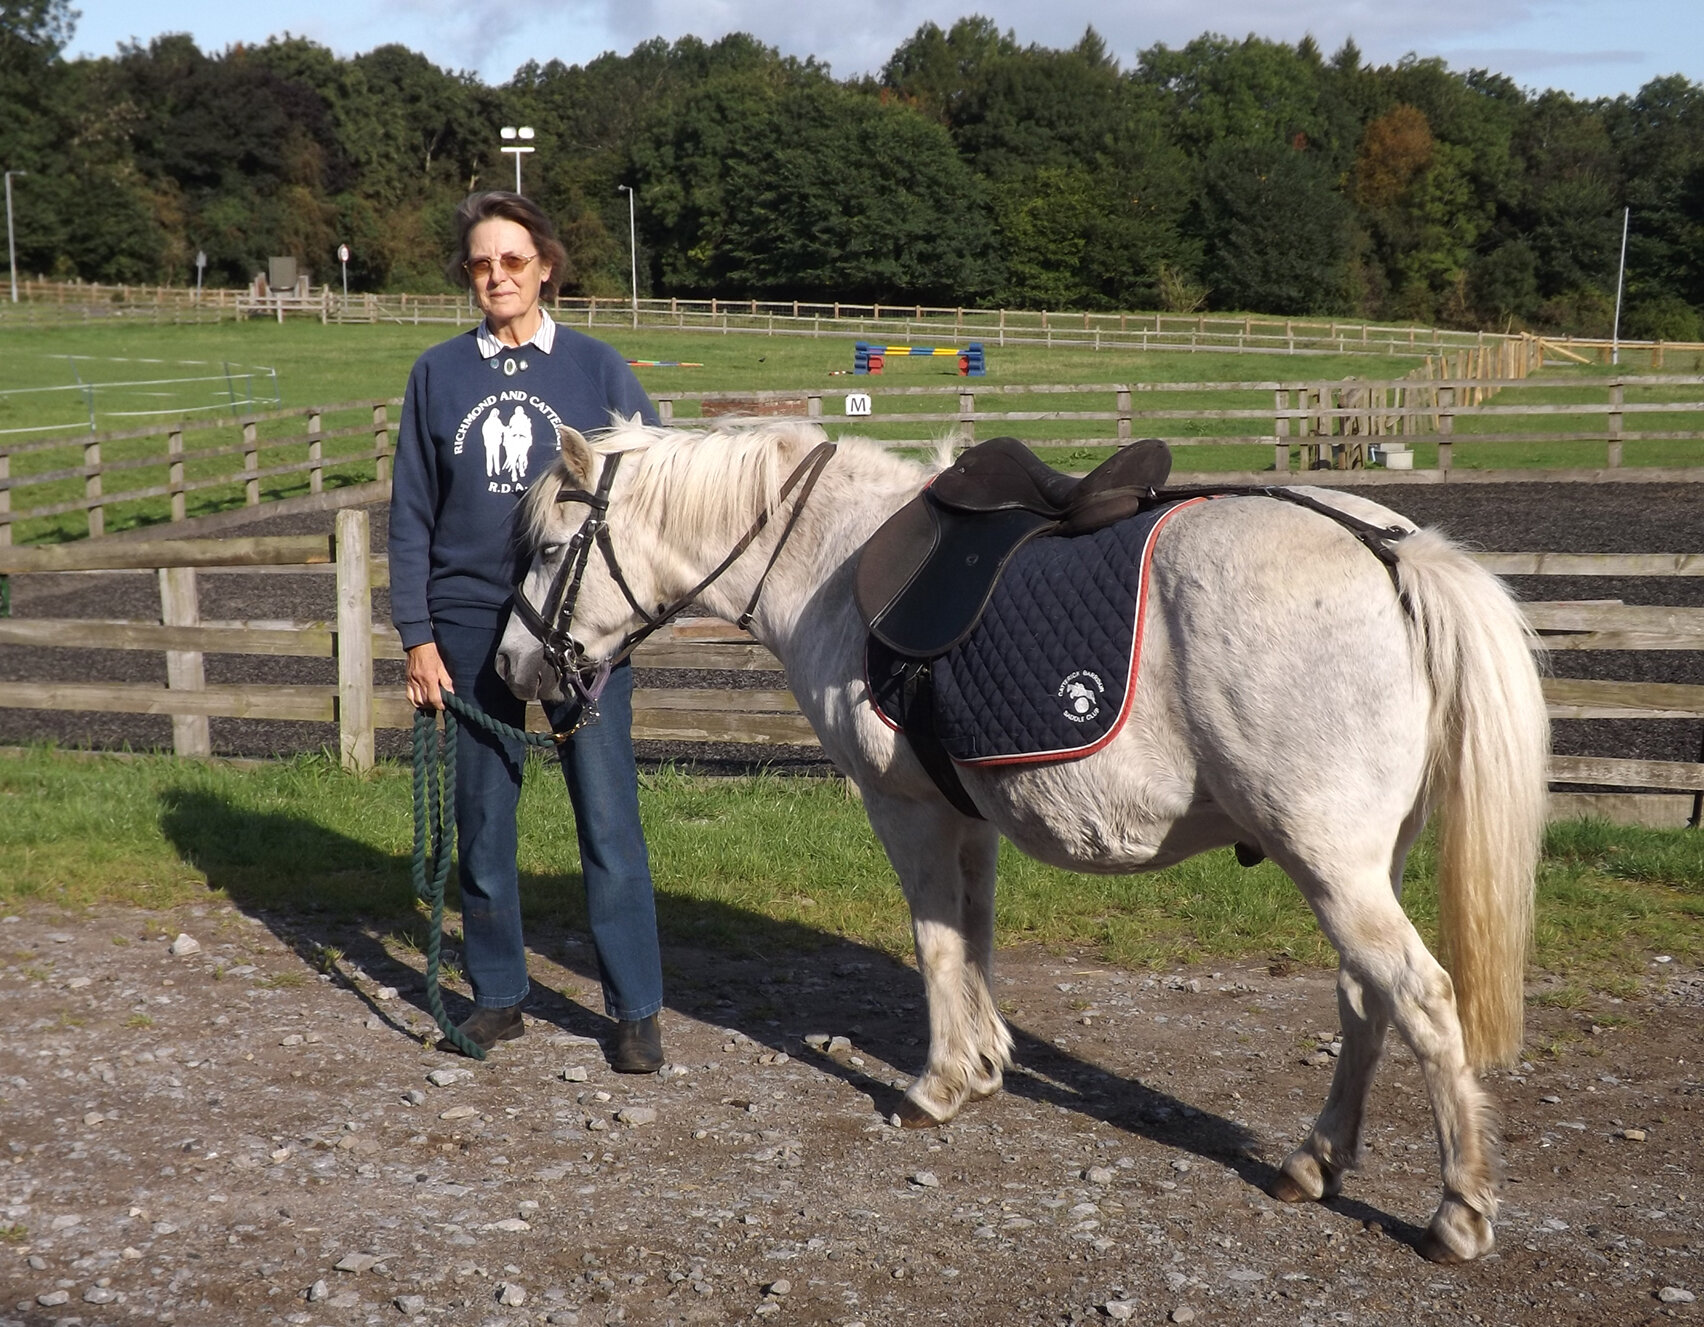 In 1971, Sue joined Richmond and Catterick RDA where she became Vice Chairman